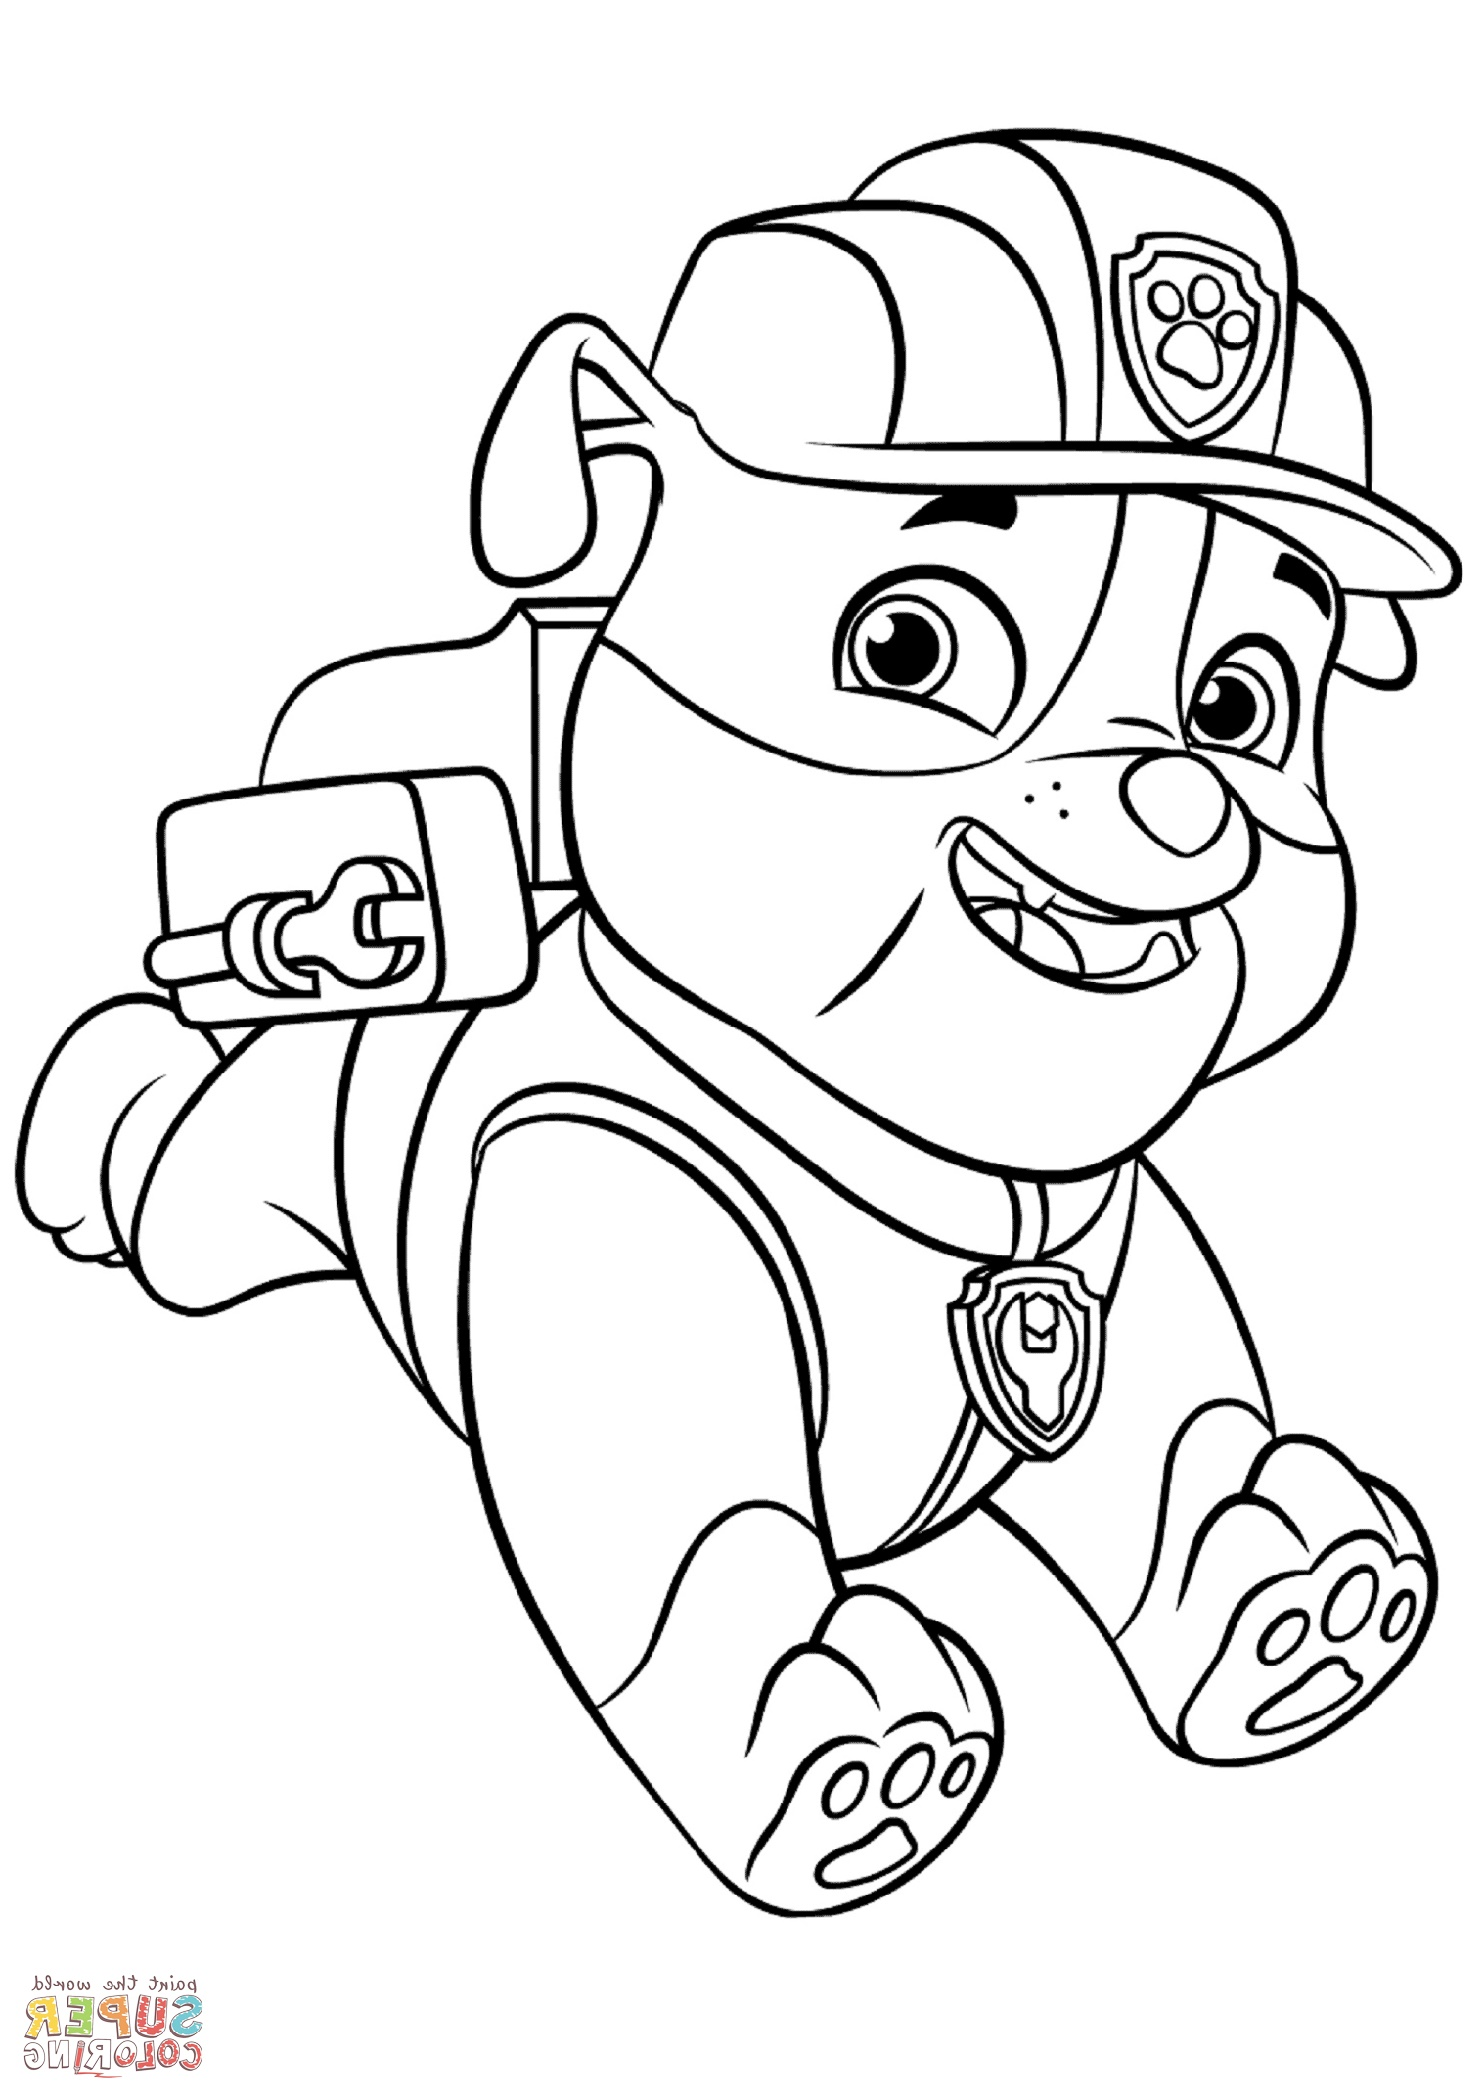 Paw Patrol Coloring Pages Downoadable